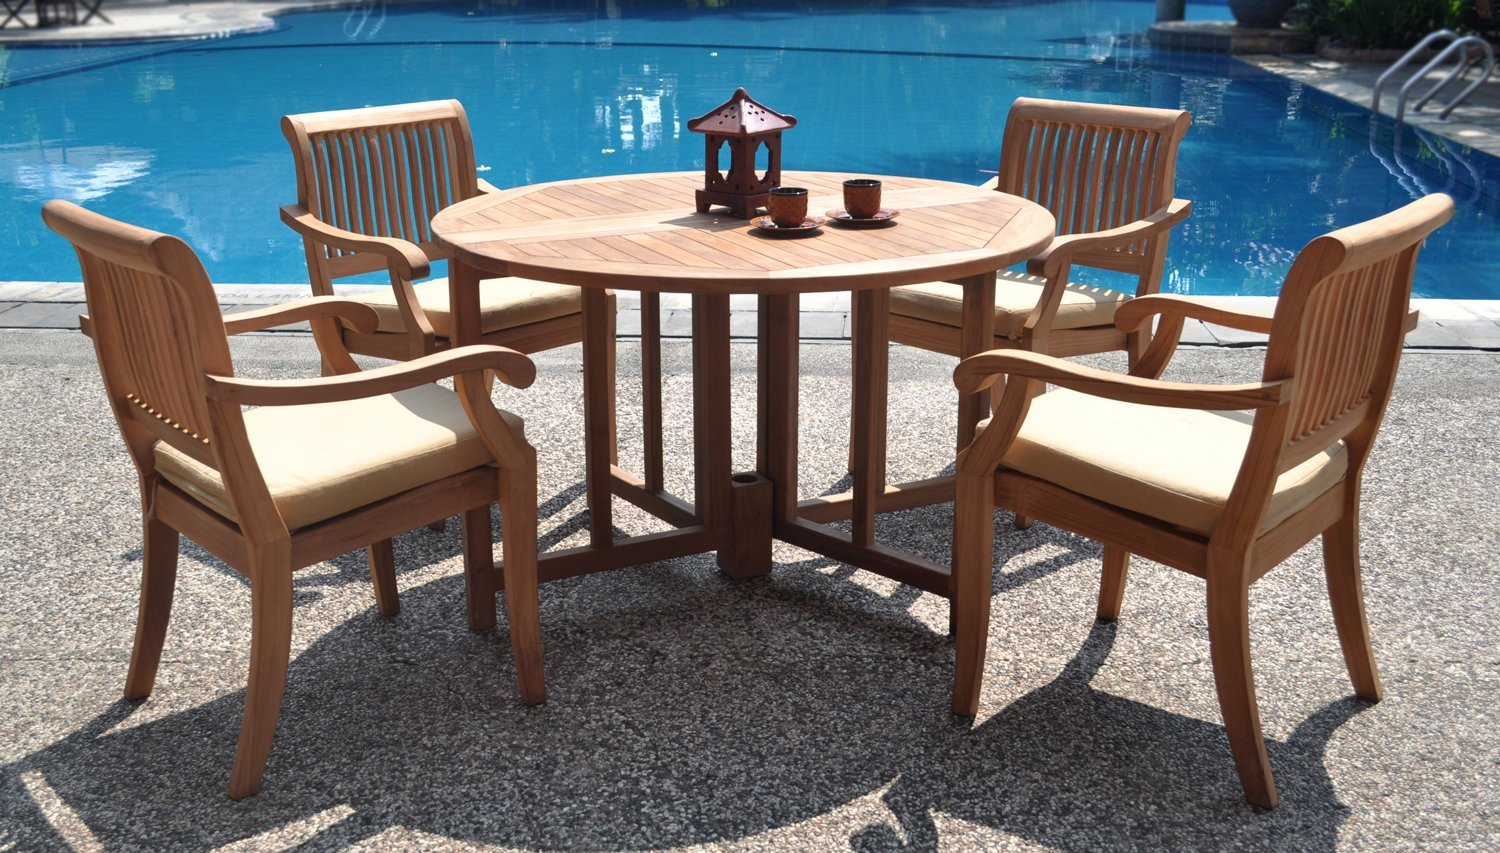 Resistant rattan effect outdoor patio dining set with round table - Cheap Patio Furniture